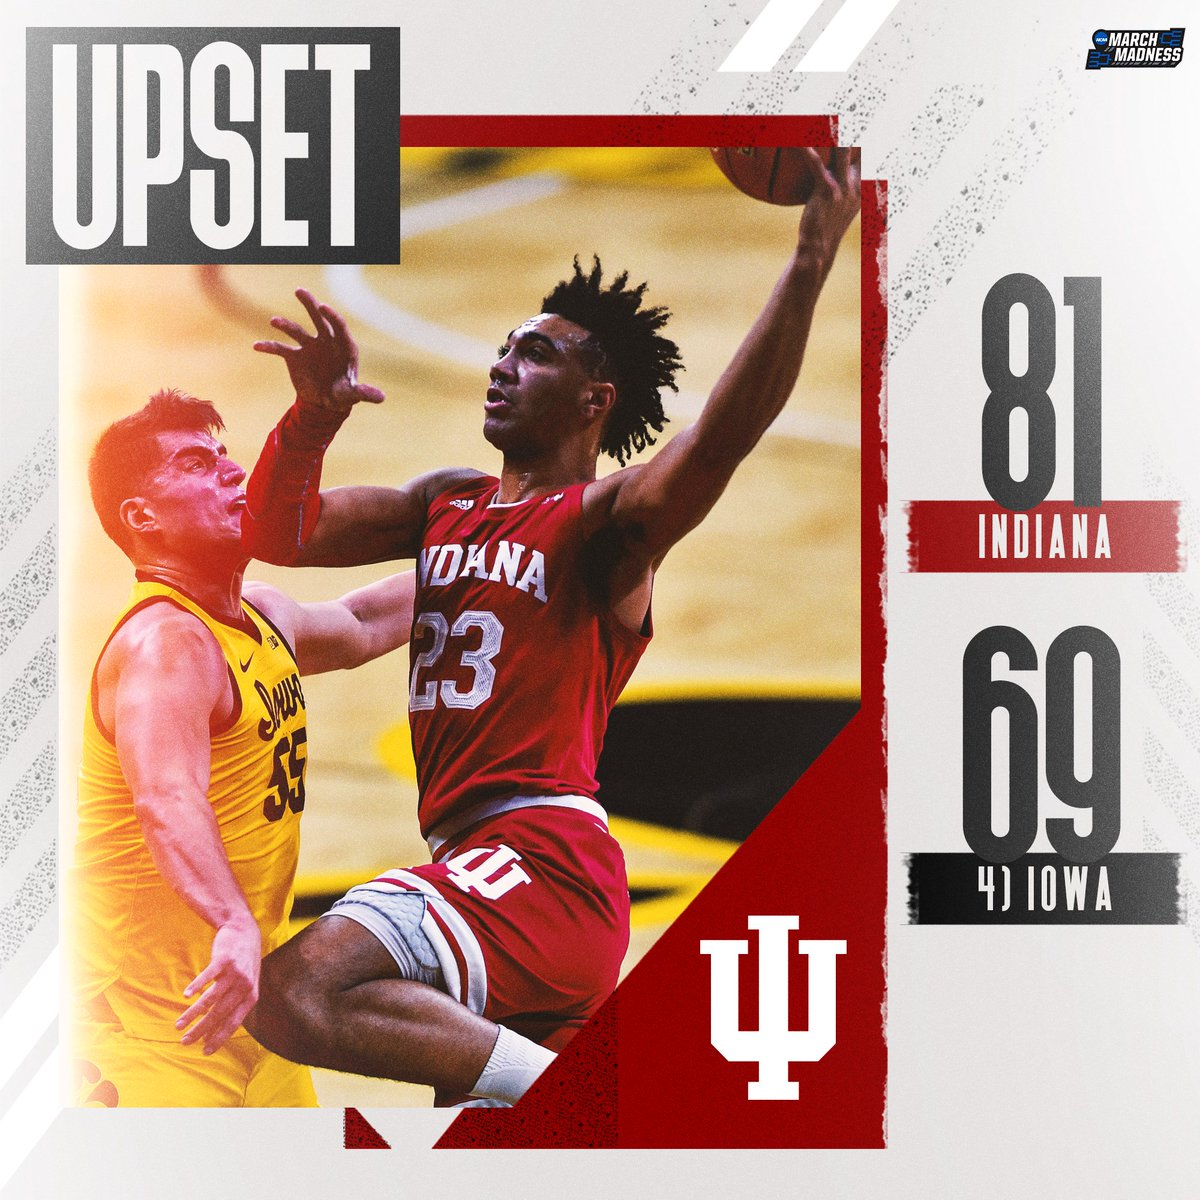 Replying to @marchmadness: 🚨 DOWN GOES NO. 4 🚨  Indiana UPSETS Iowa for a signature road win! #IUBB